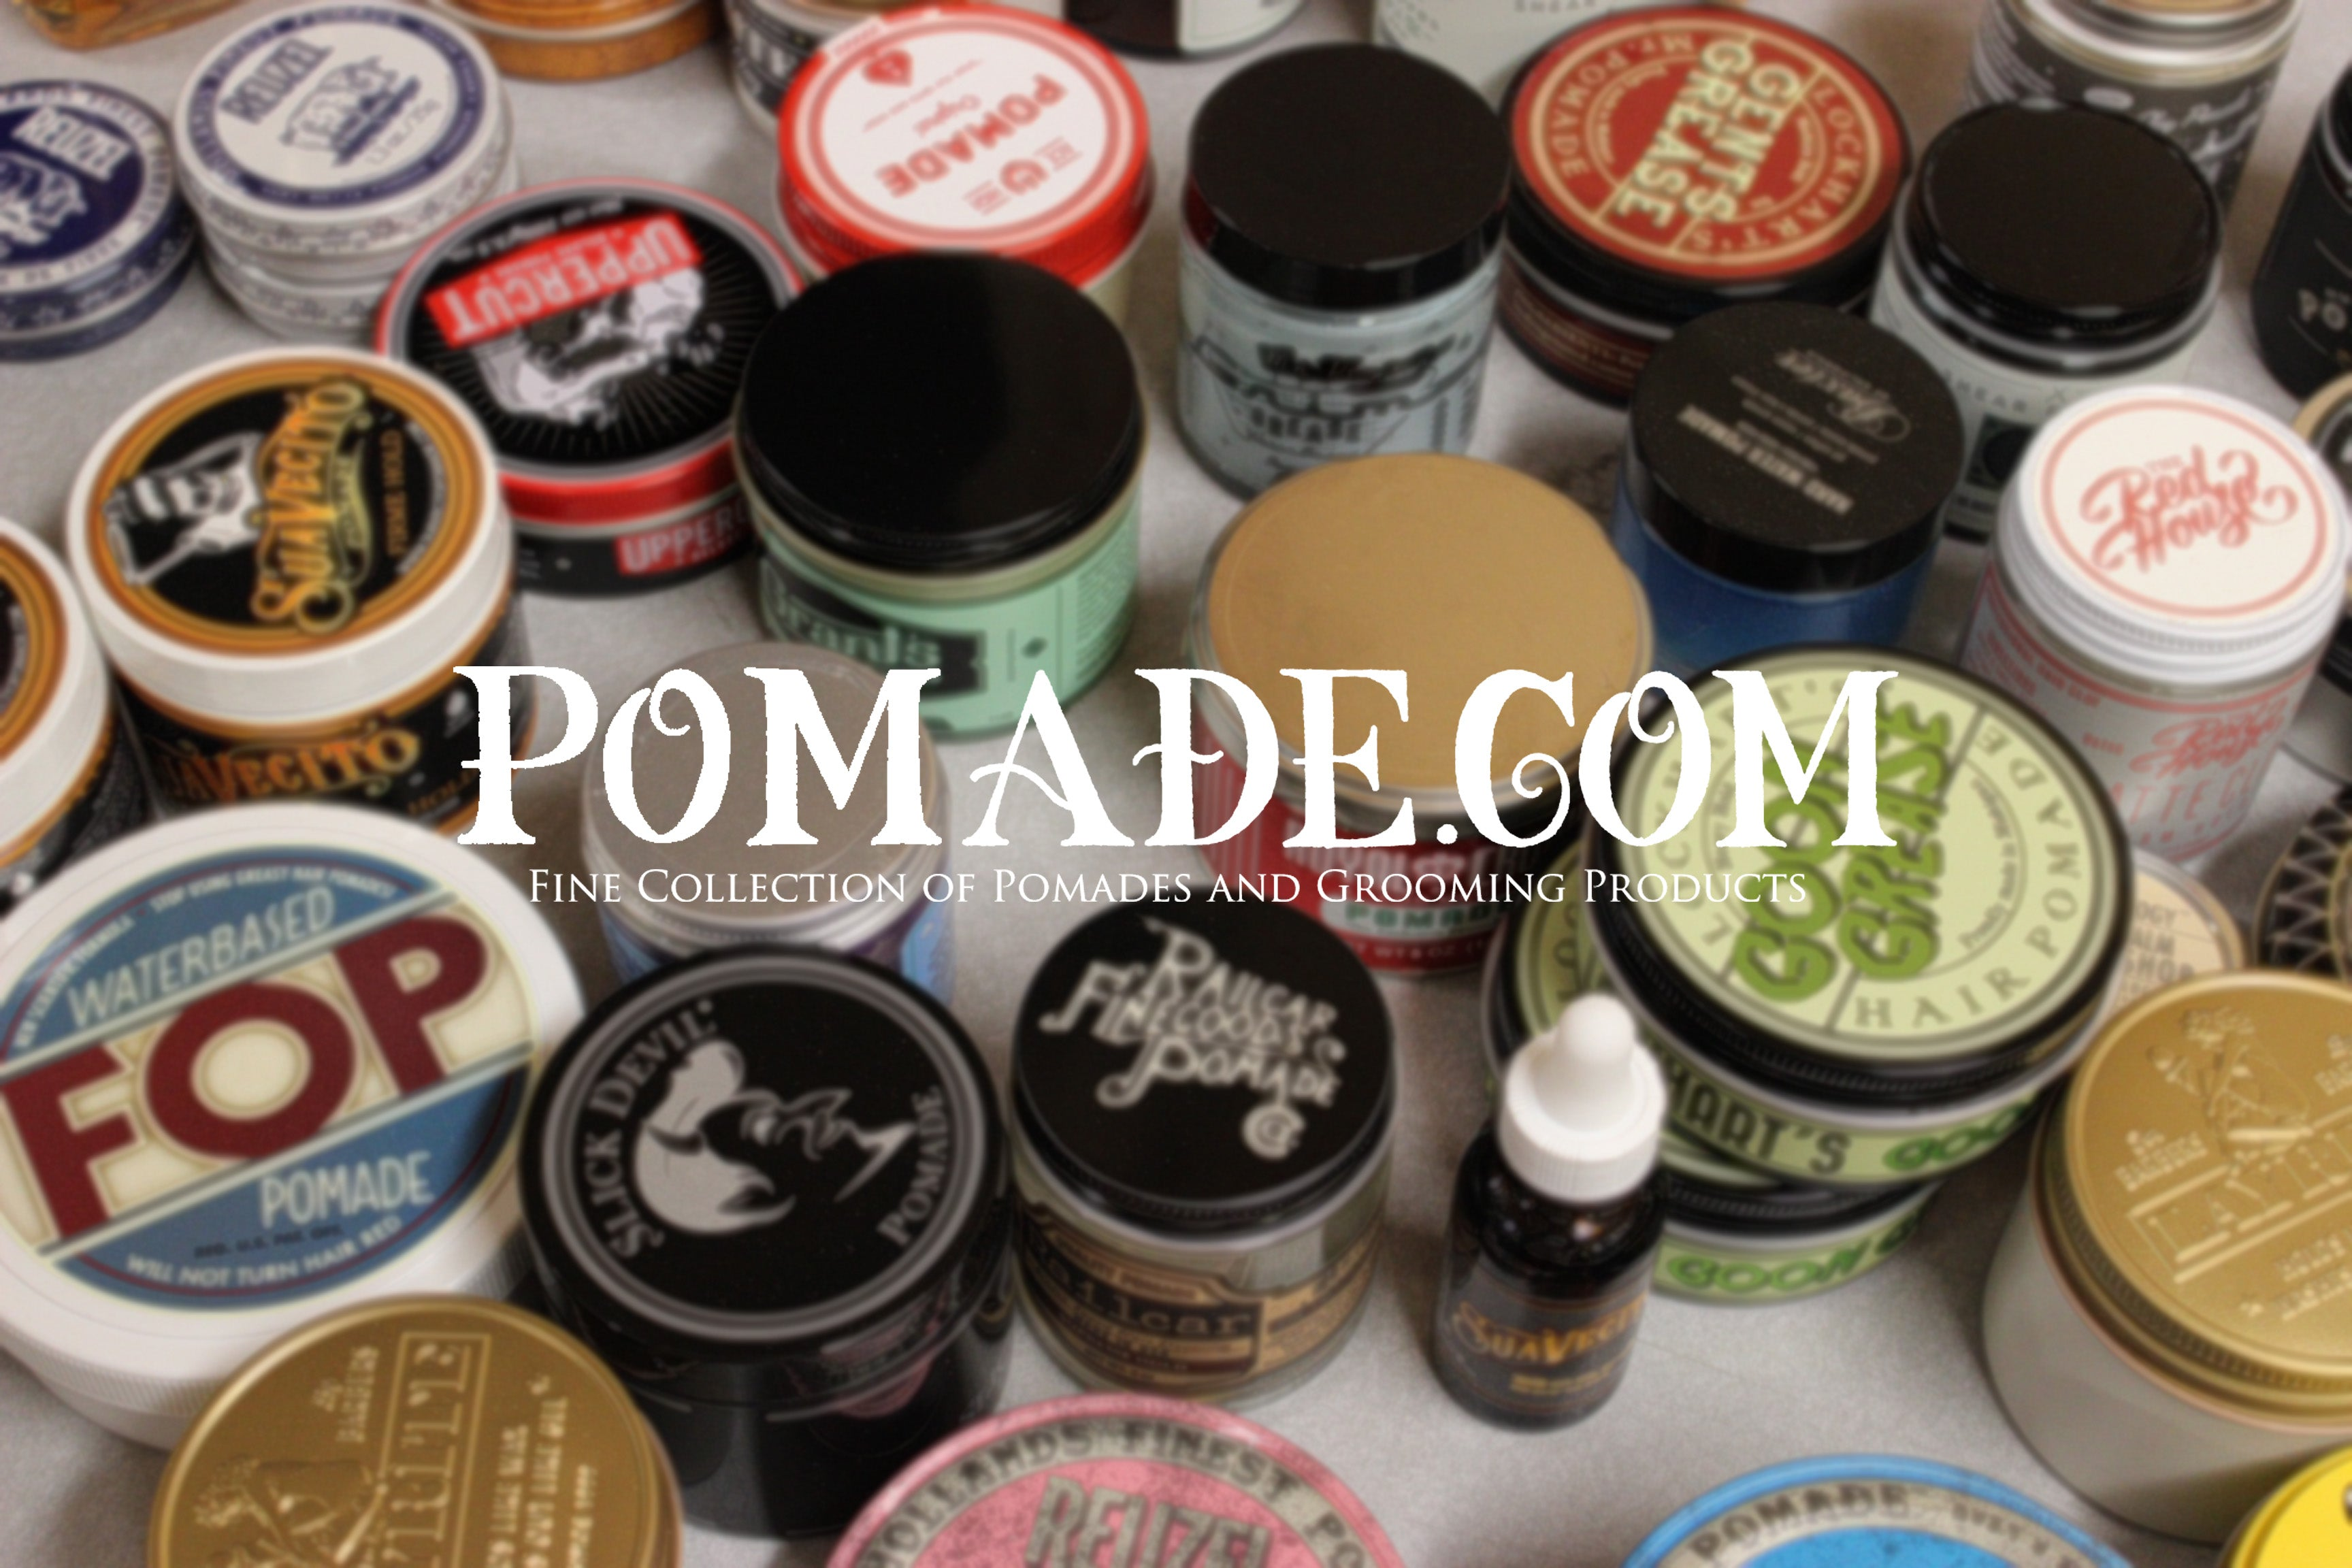 Mr. Pomade Offers More Products